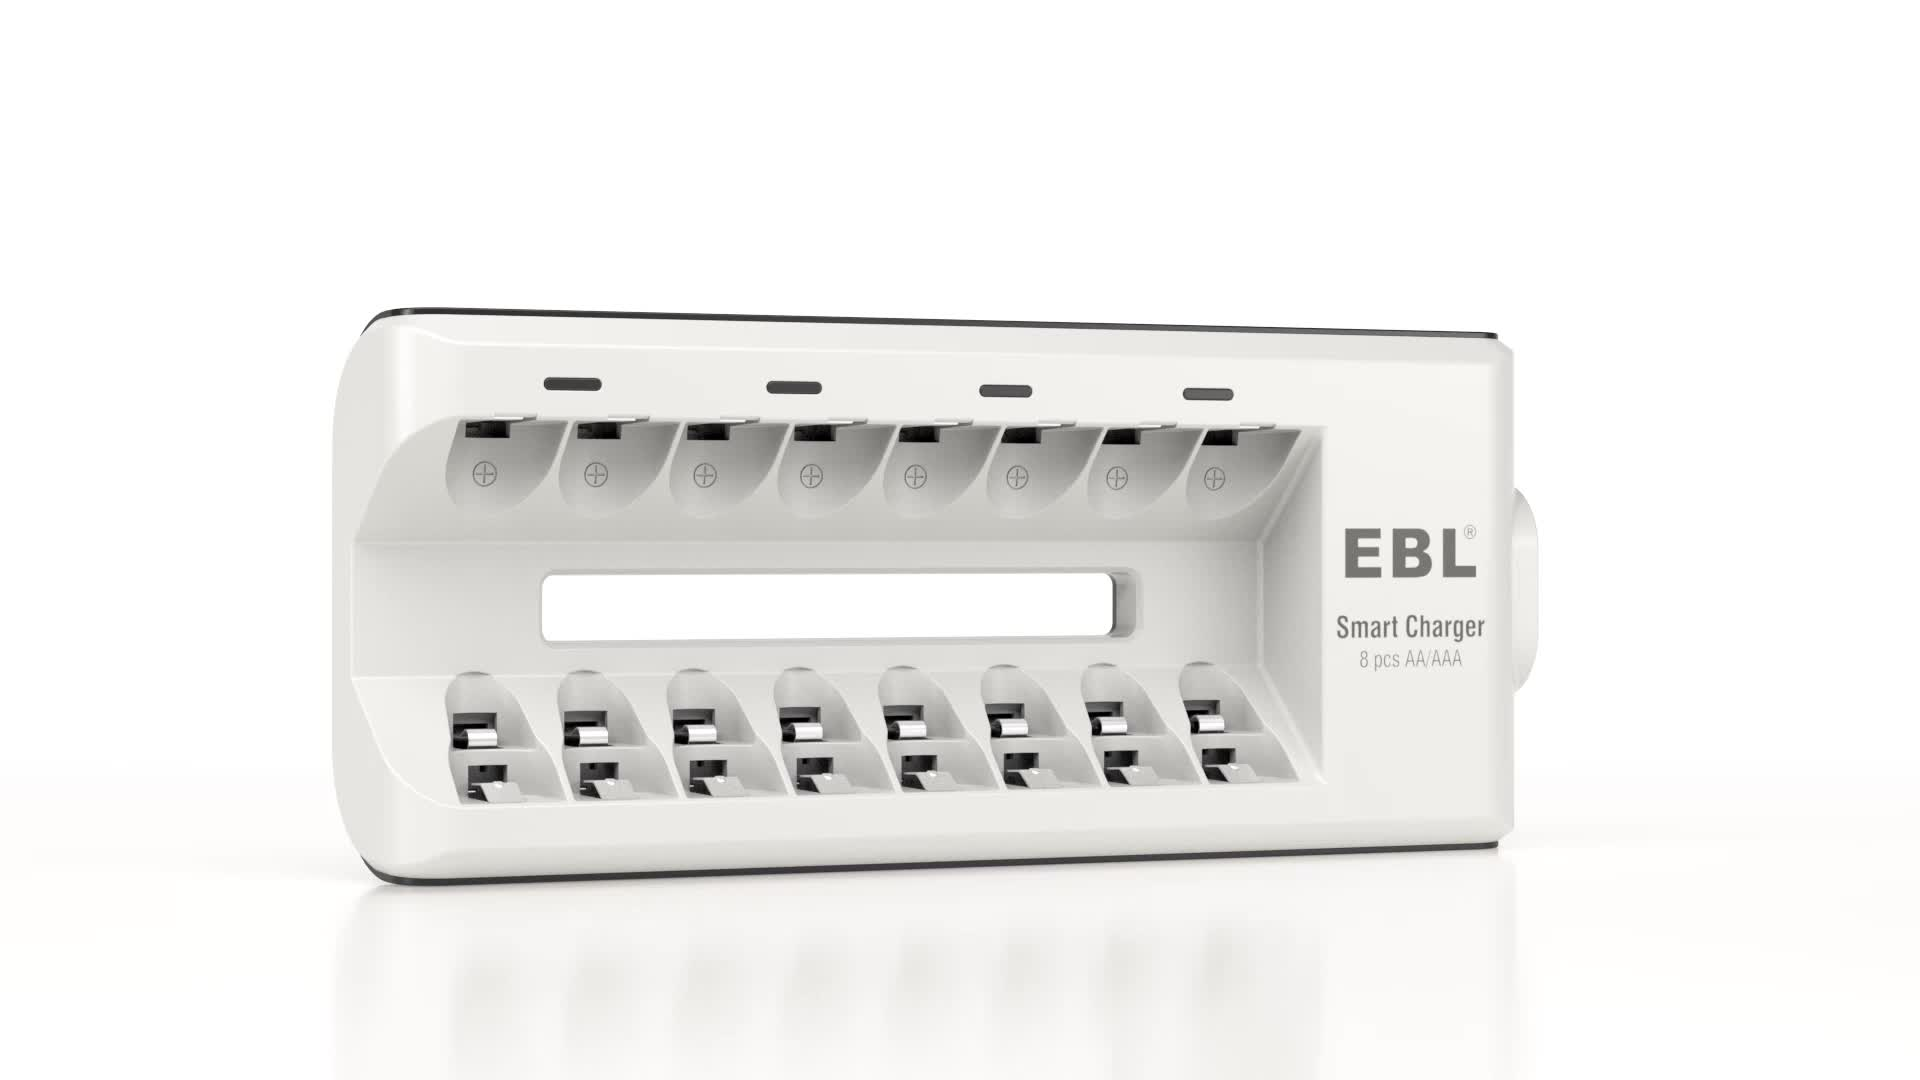 EBL Rechargeable AA AAA Battery Charger Quick Charger With 8 Bay Slot